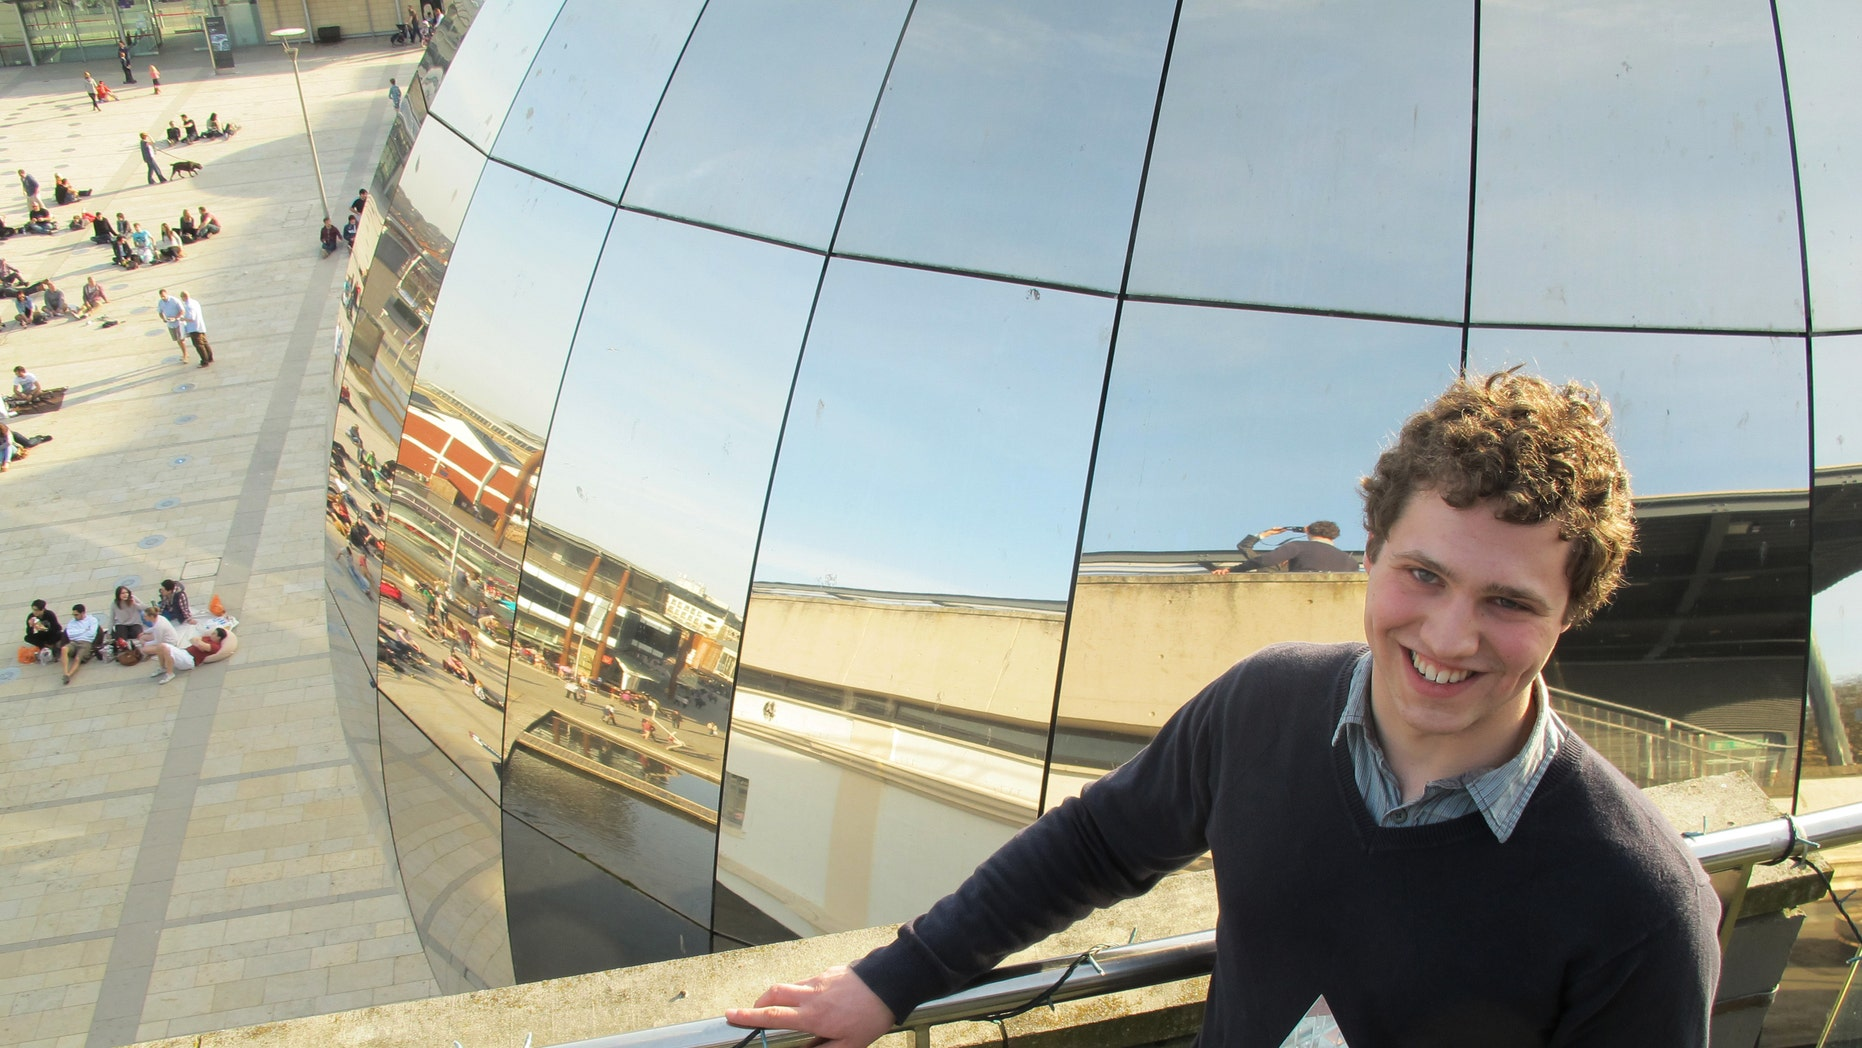 March 11, 2012: The Cambridge University student who is named UK Cyber Security Champion Jonathan Millican, poses for a photograph with his trophy at the Science Museum in Bristol, England.